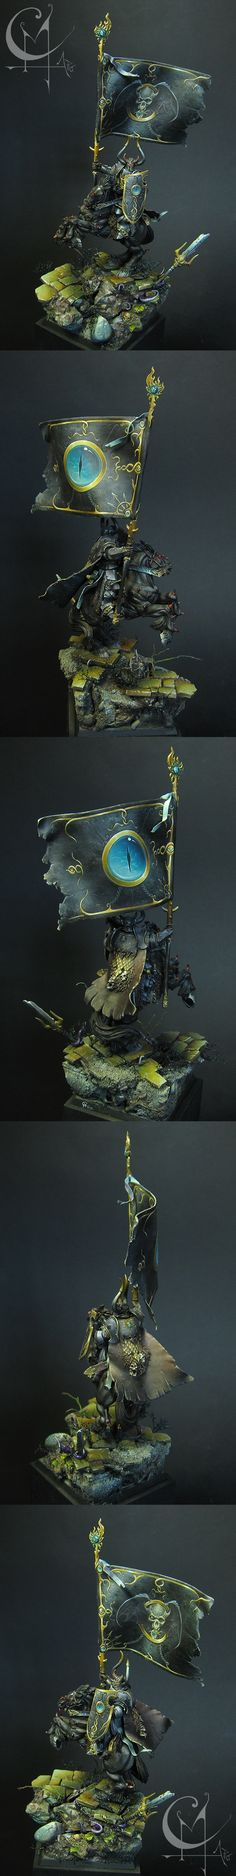 Warriors of Chaos - Battle Standard Bearer of Tzeentch - I can only imagine that this was a very expensive conversion